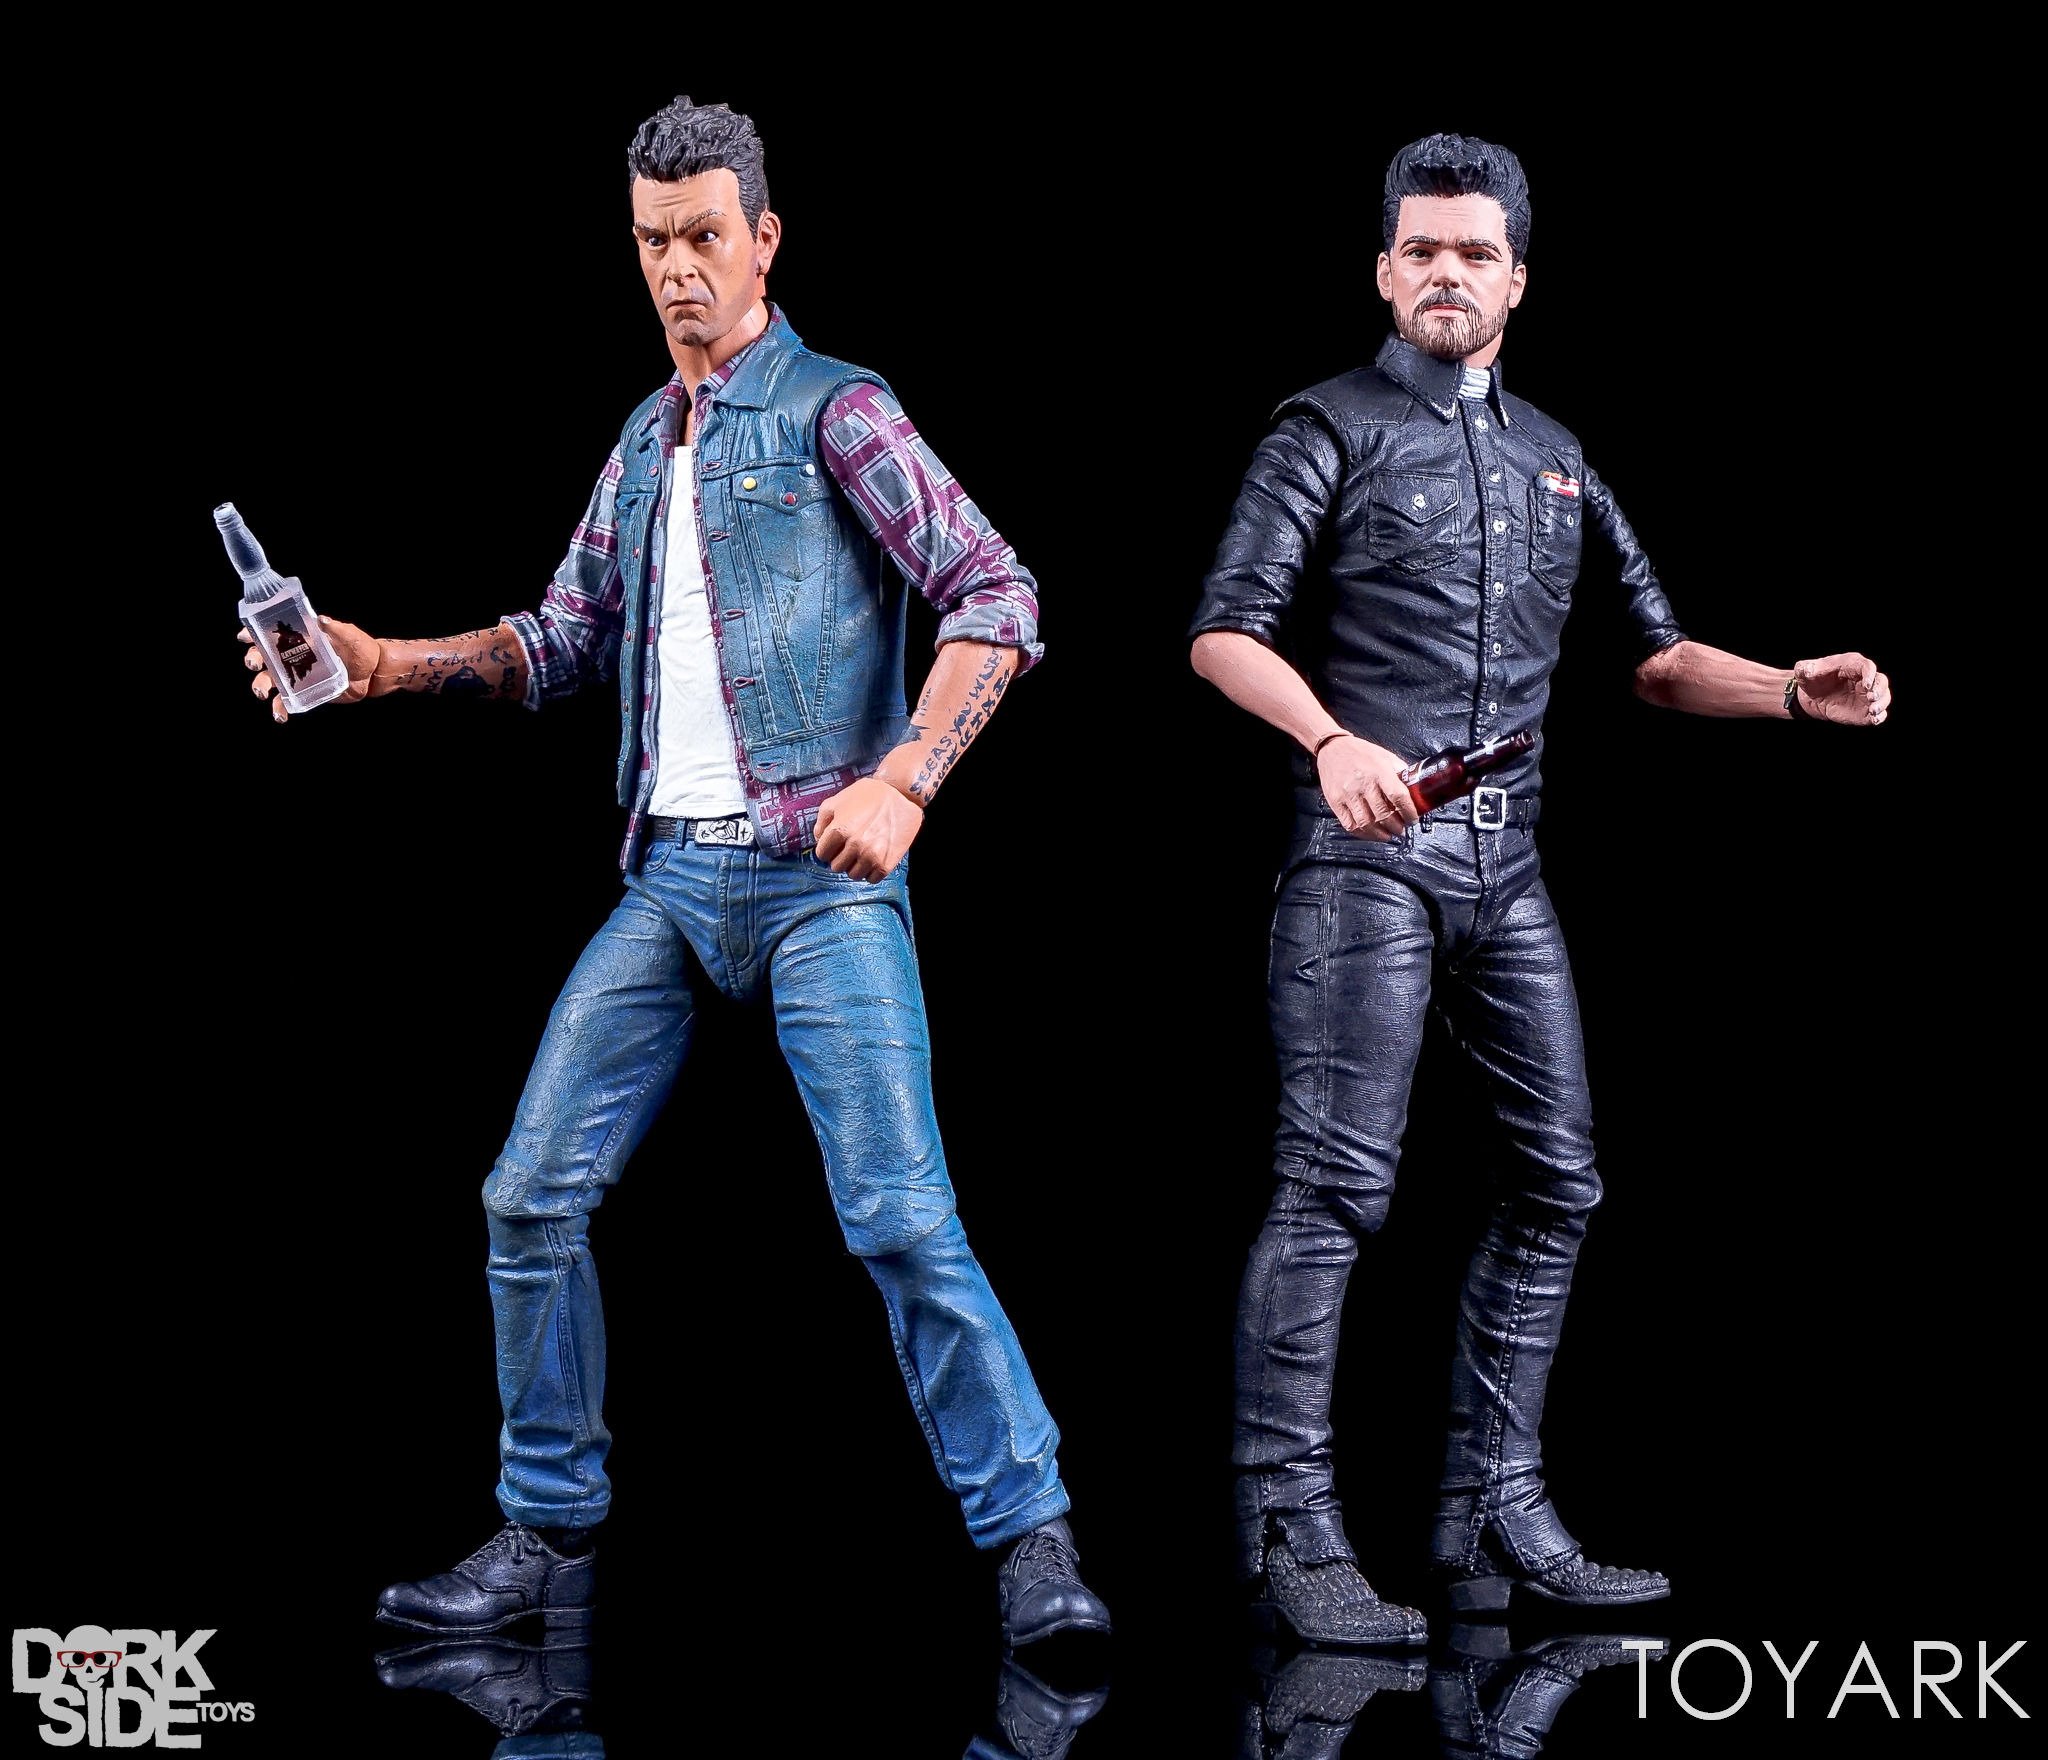 http://news.toyark.com/wp-content/uploads/sites/4/2017/05/NECA-Preacher-Figures-036.jpg